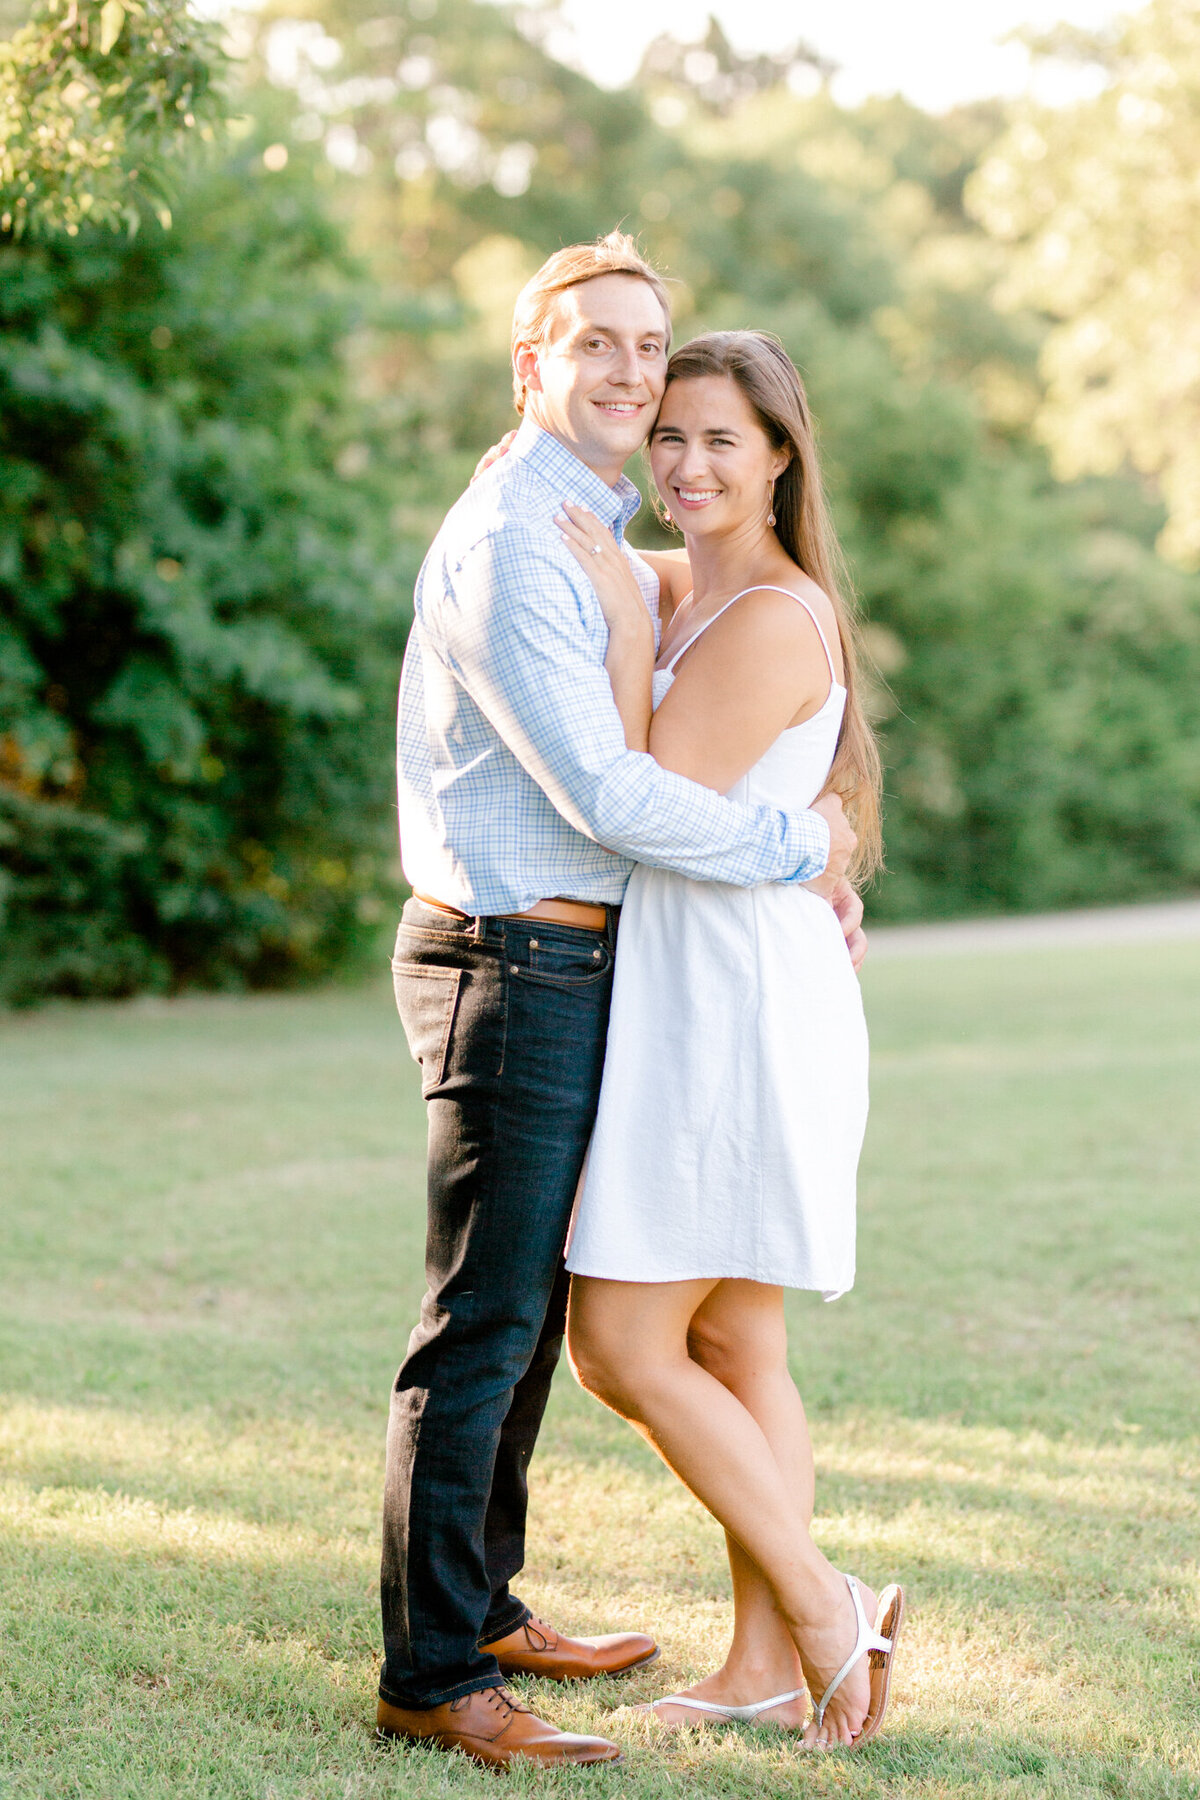 Christina & Steven Engagement Session at Prairie Creek Park in Richardson, Texas | DFW Wedding Photographer | Sami Kathryn Photography-1